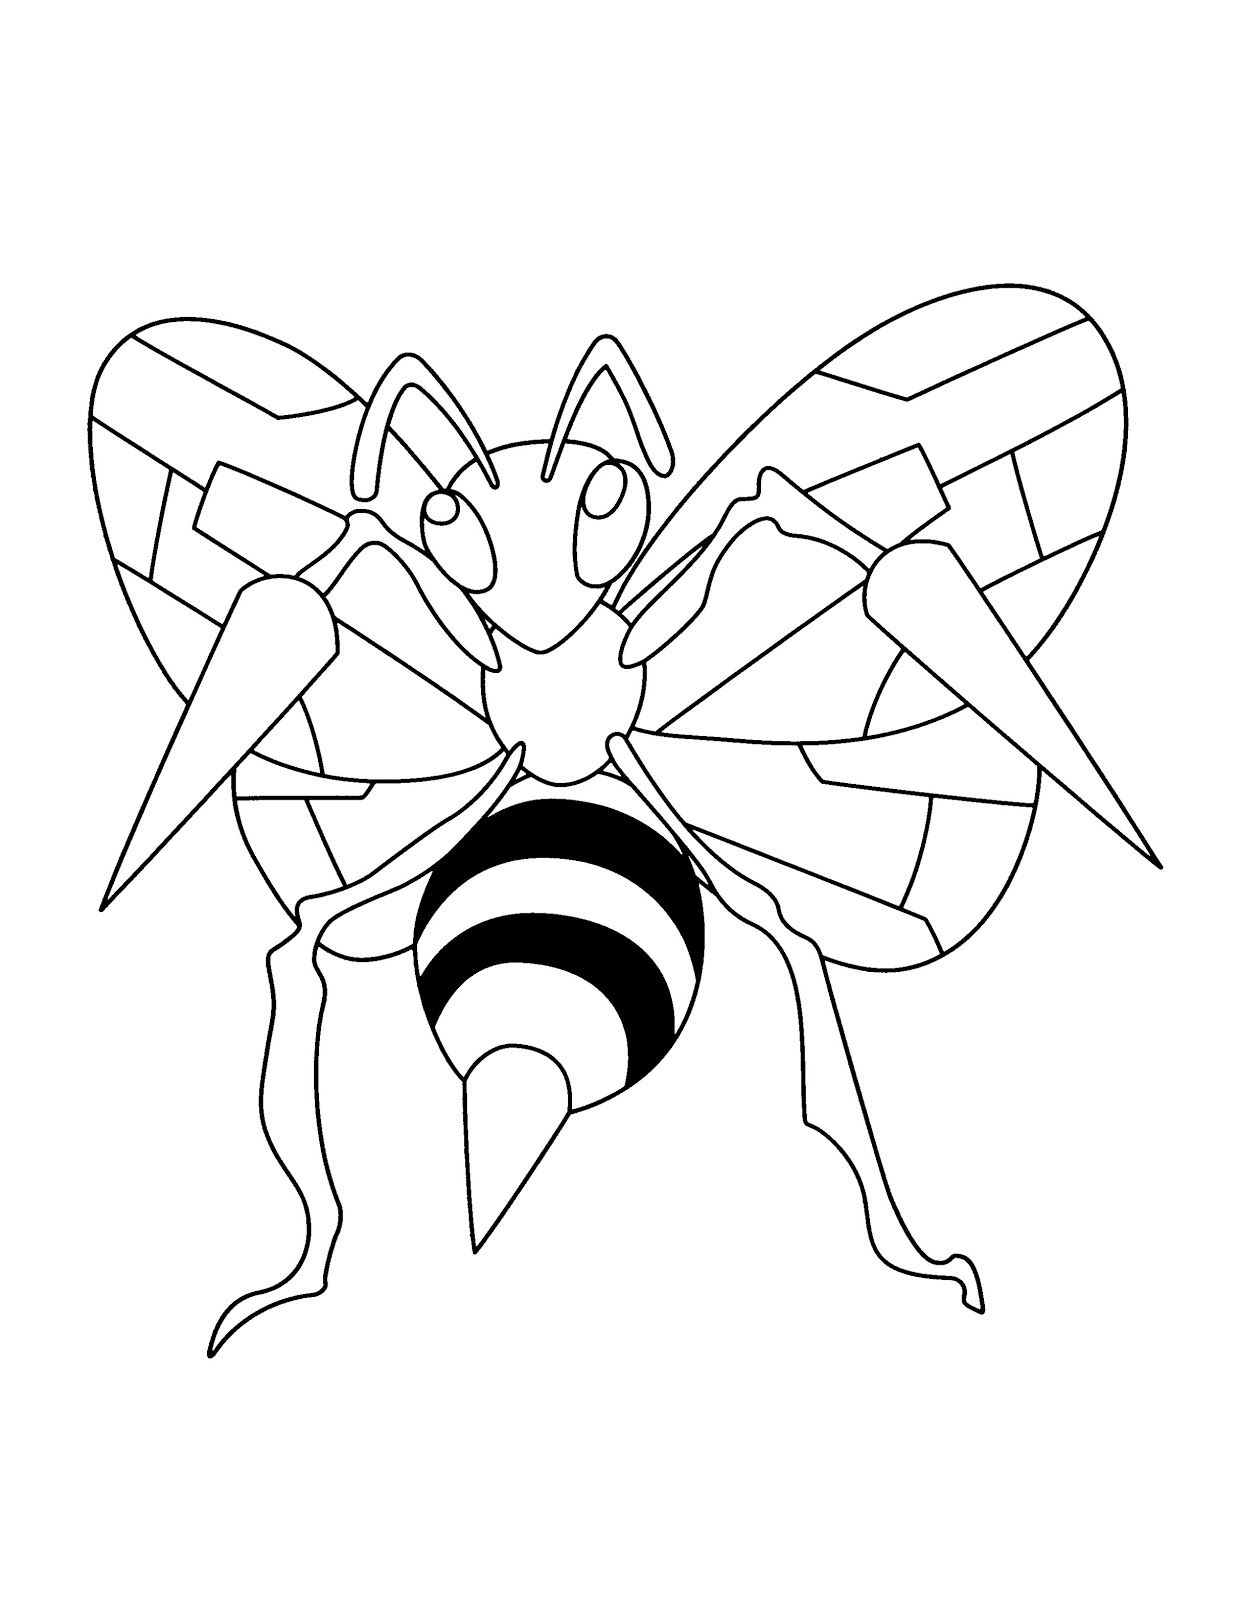 Full Size Beedrill Pokemon Coloring Pages Pokemon Coloring Pages Pokemon Coloring Pokemon Printables